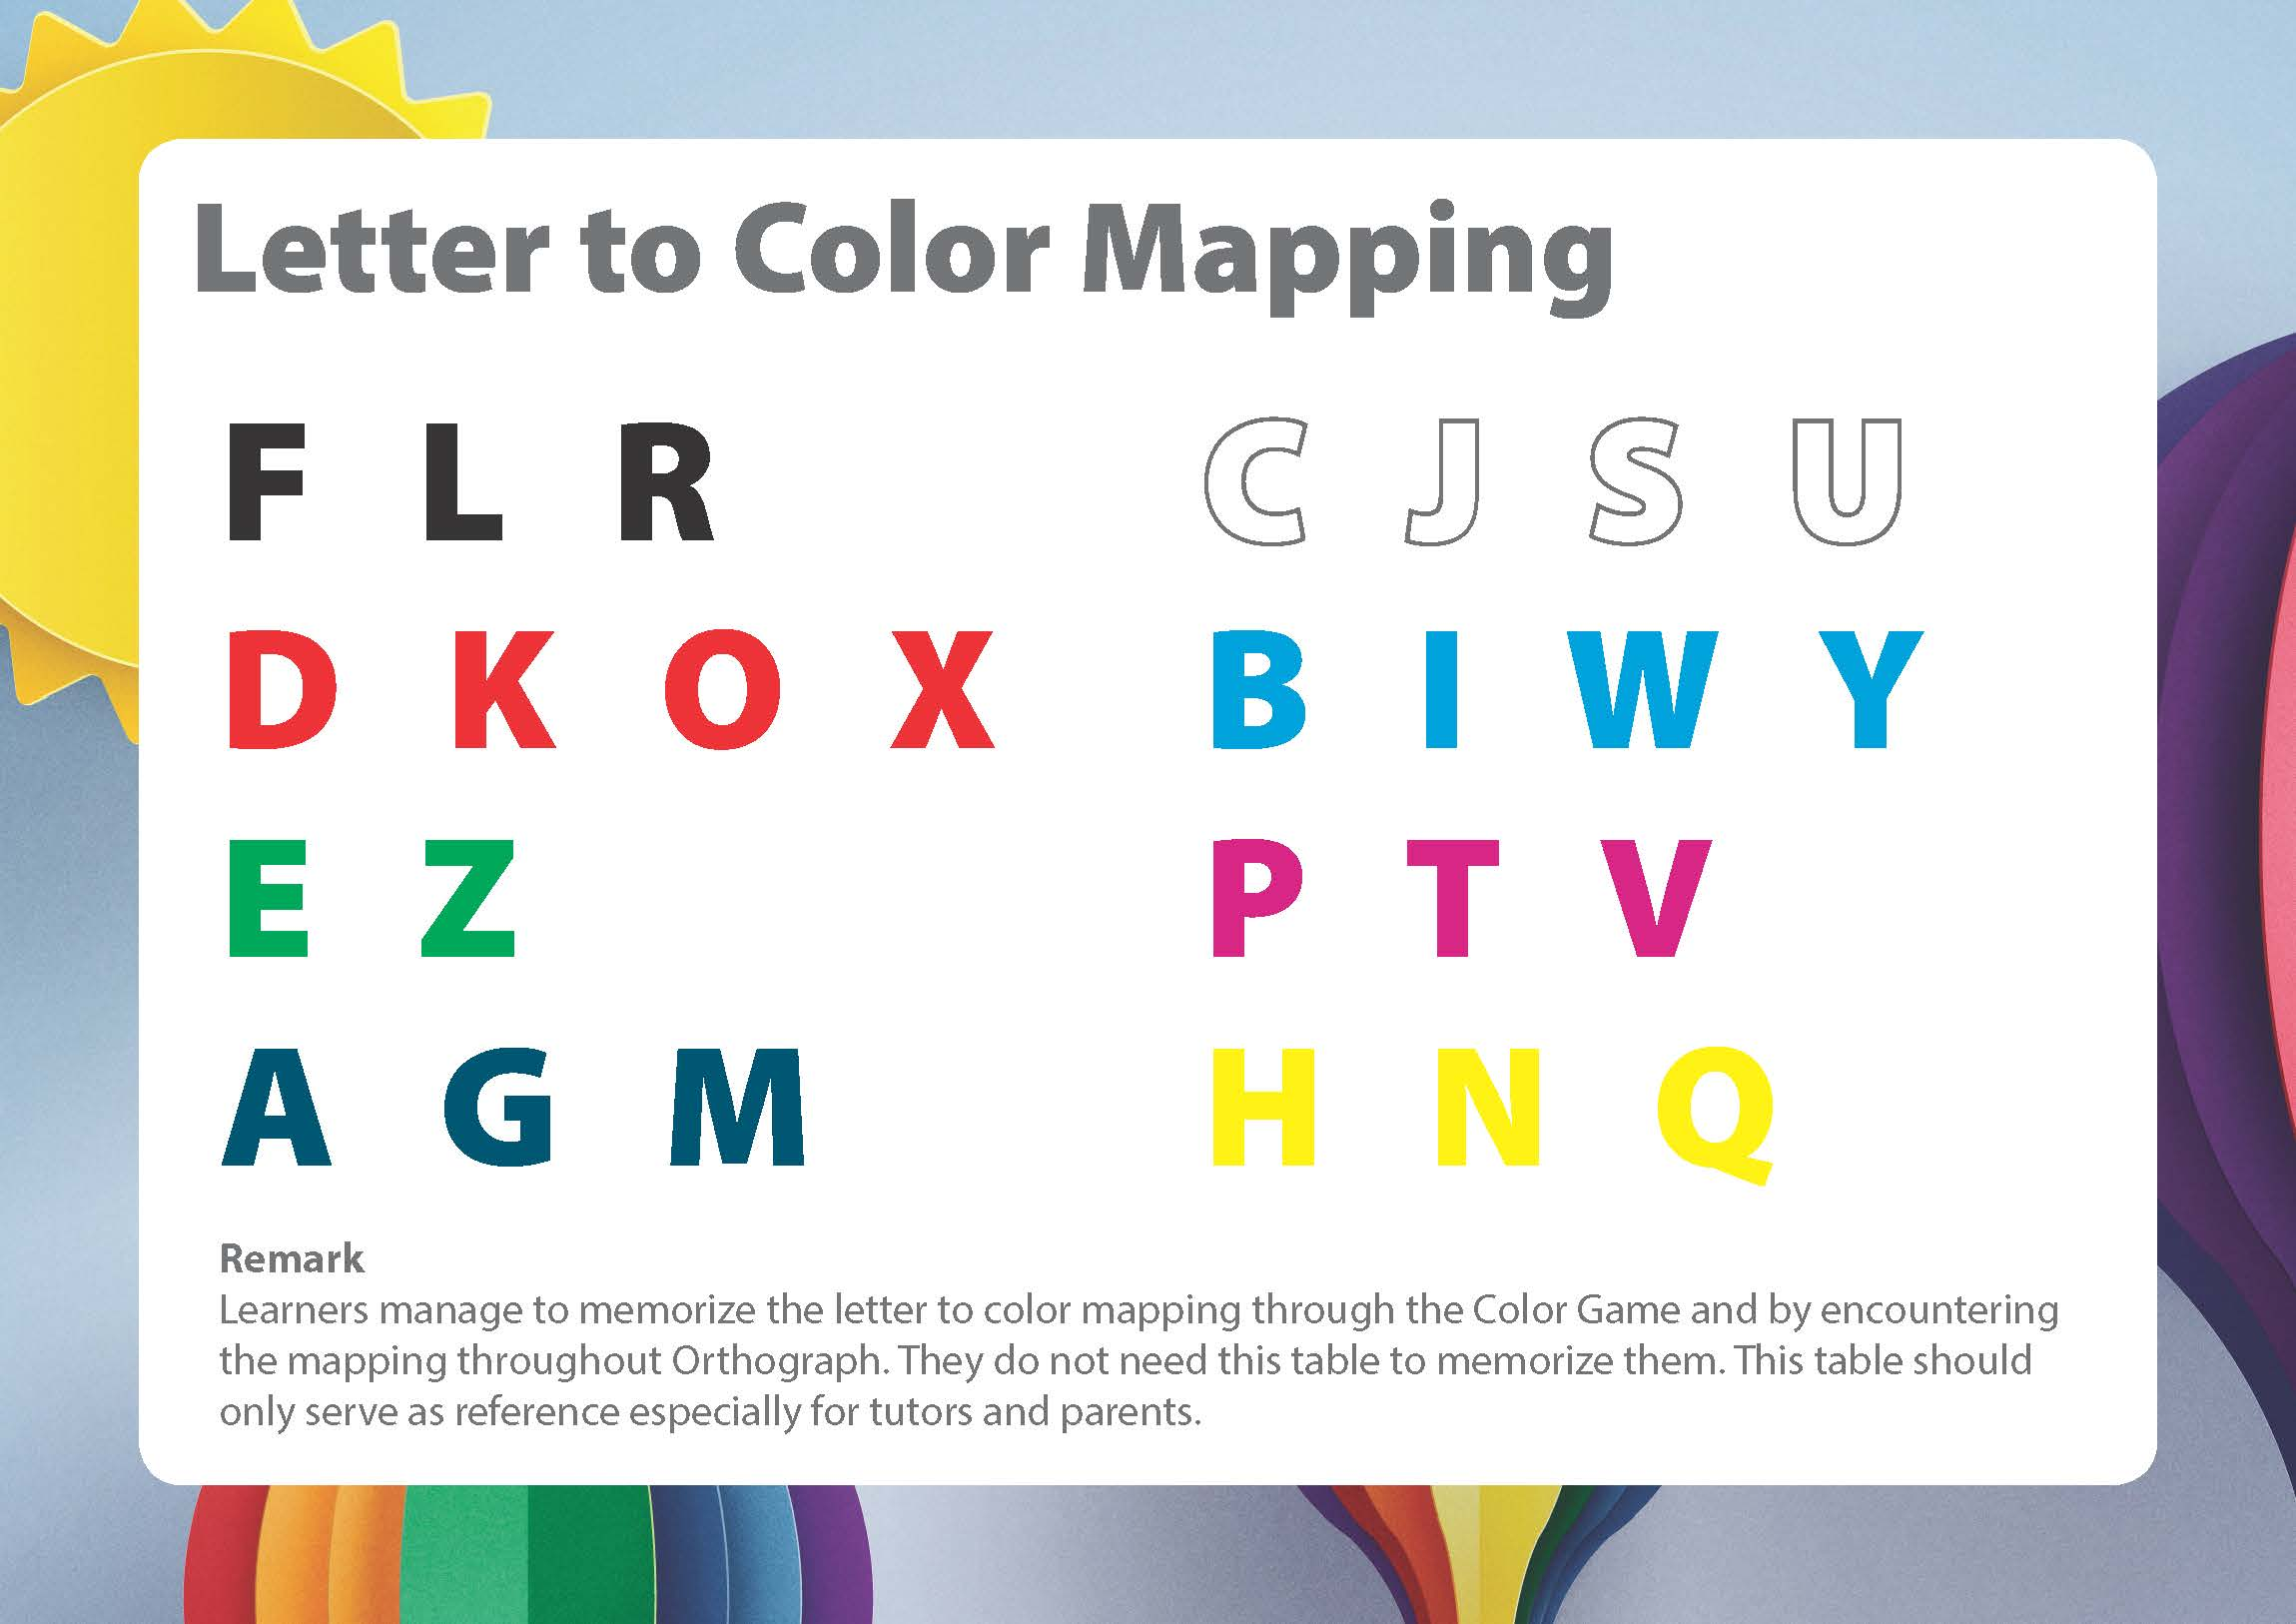 ColorMapping_US